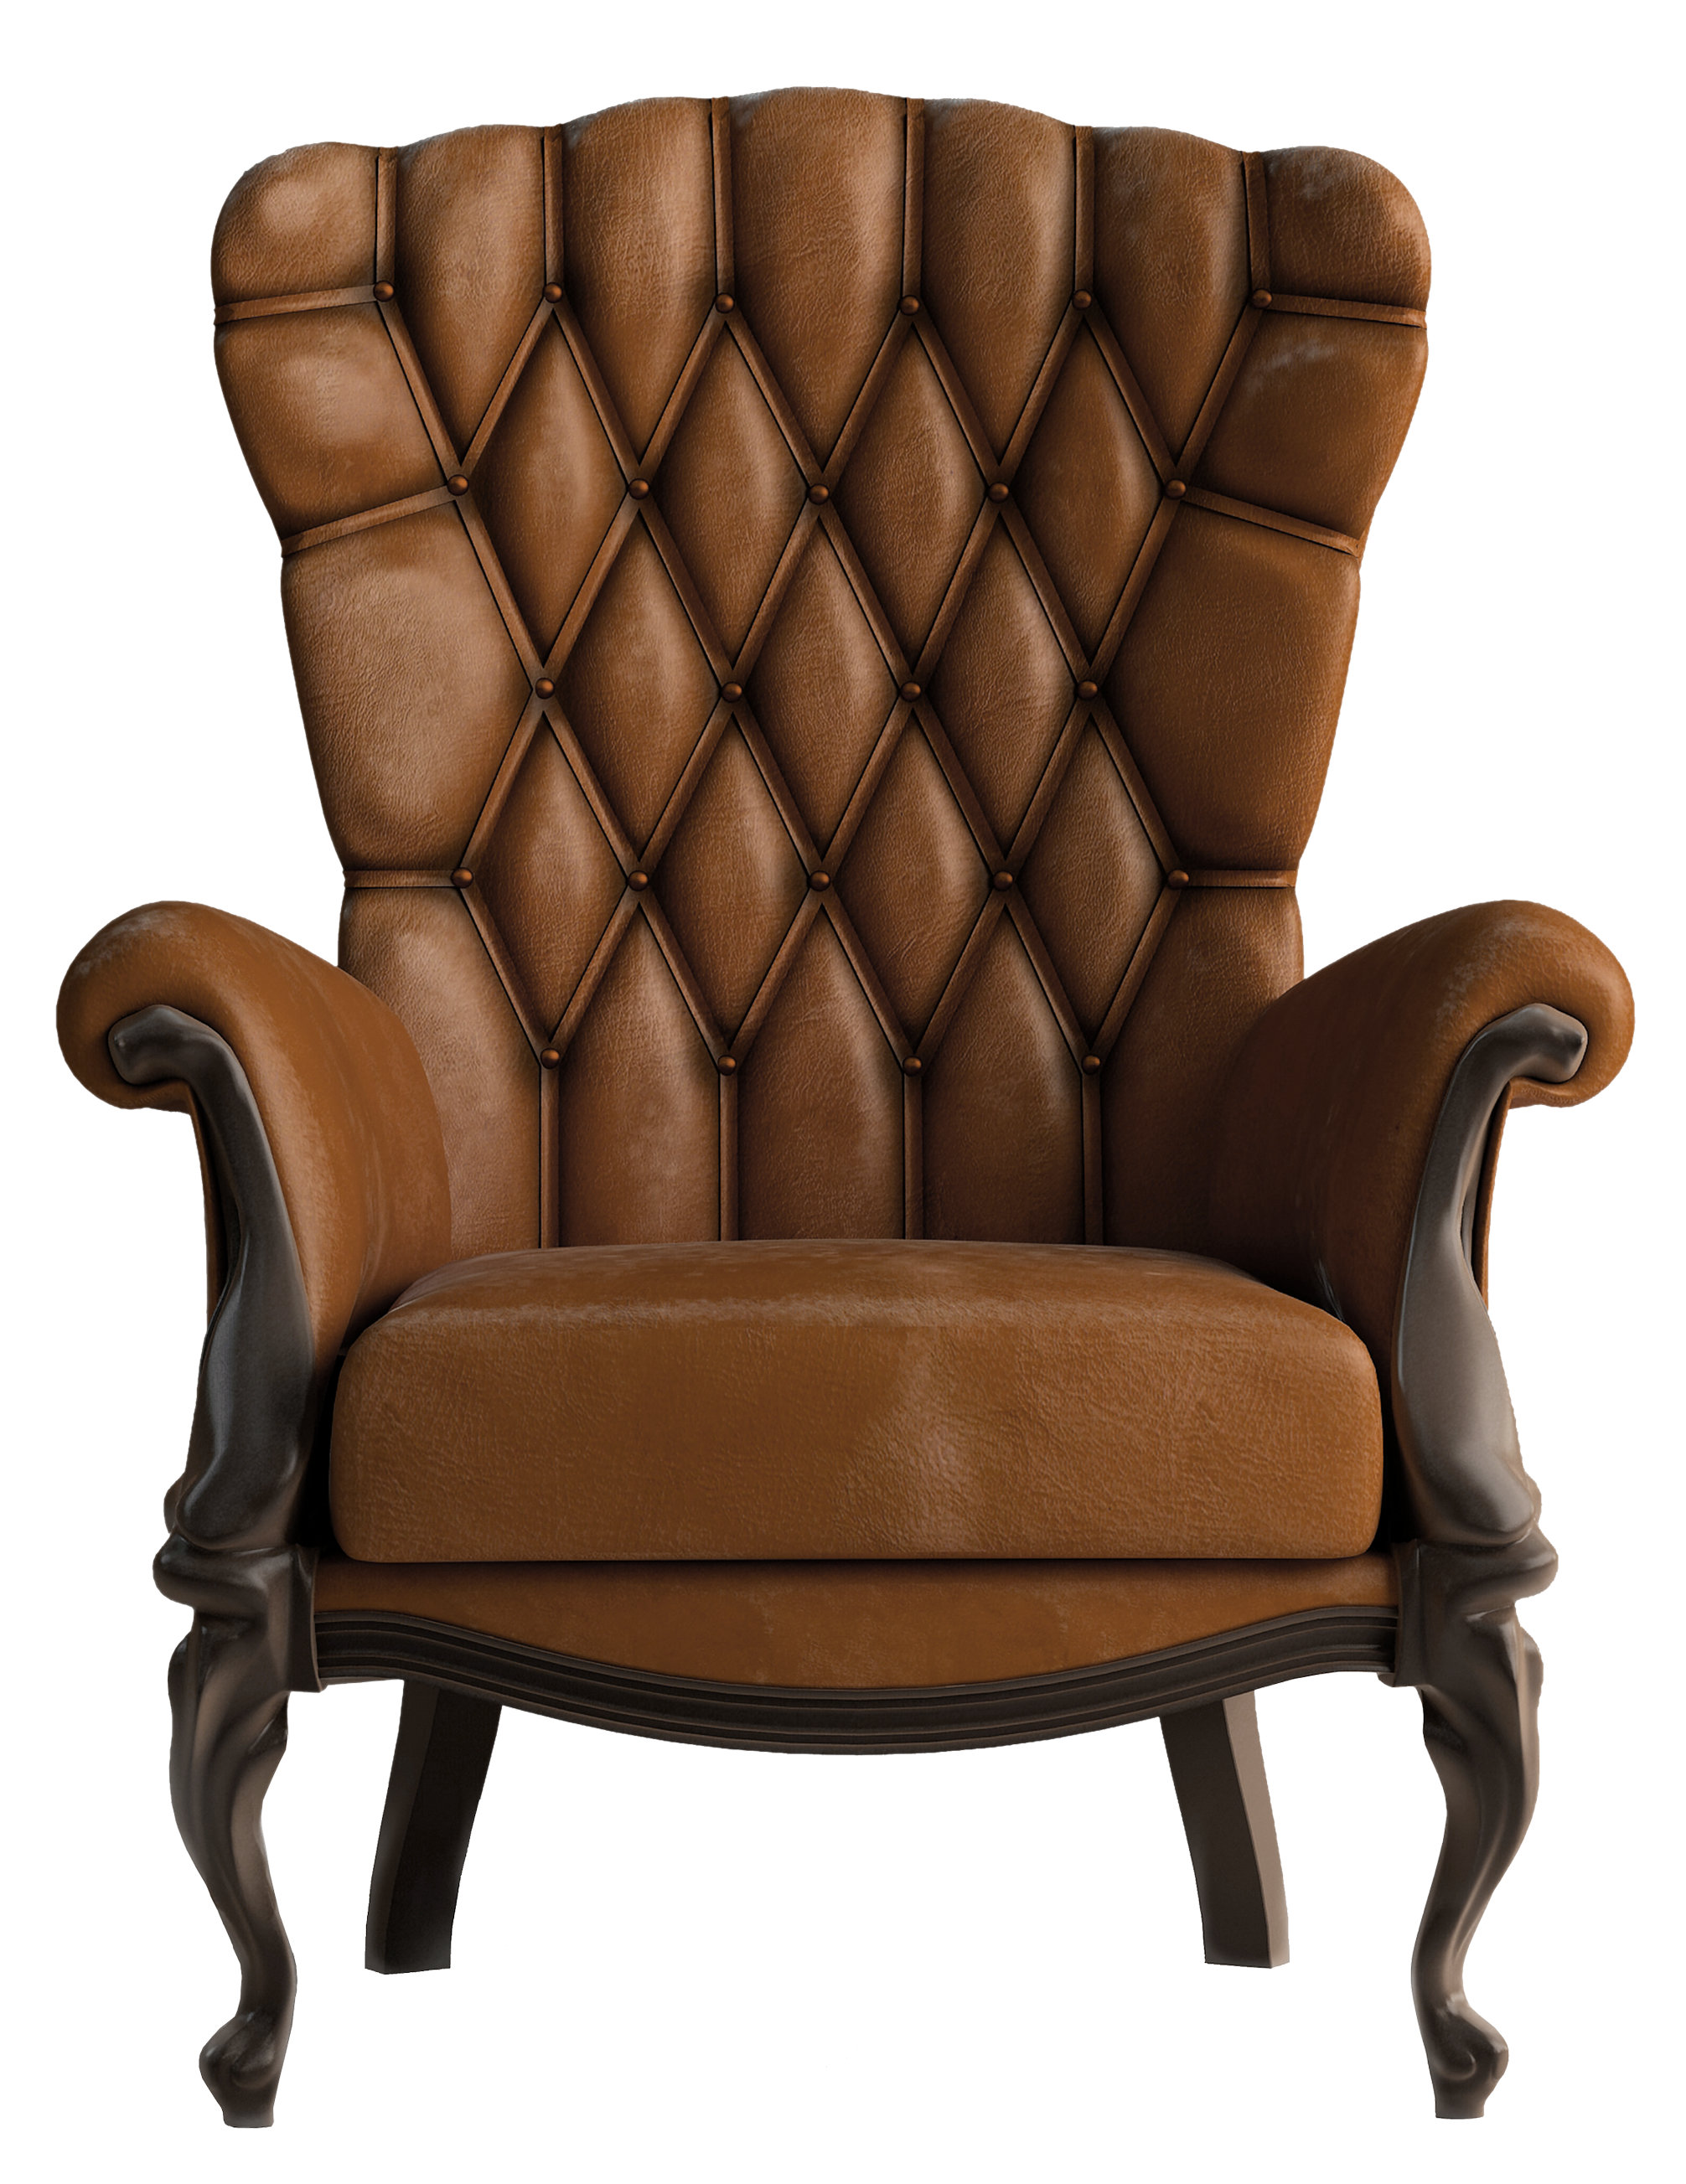 Armchair HD PNG - 93785